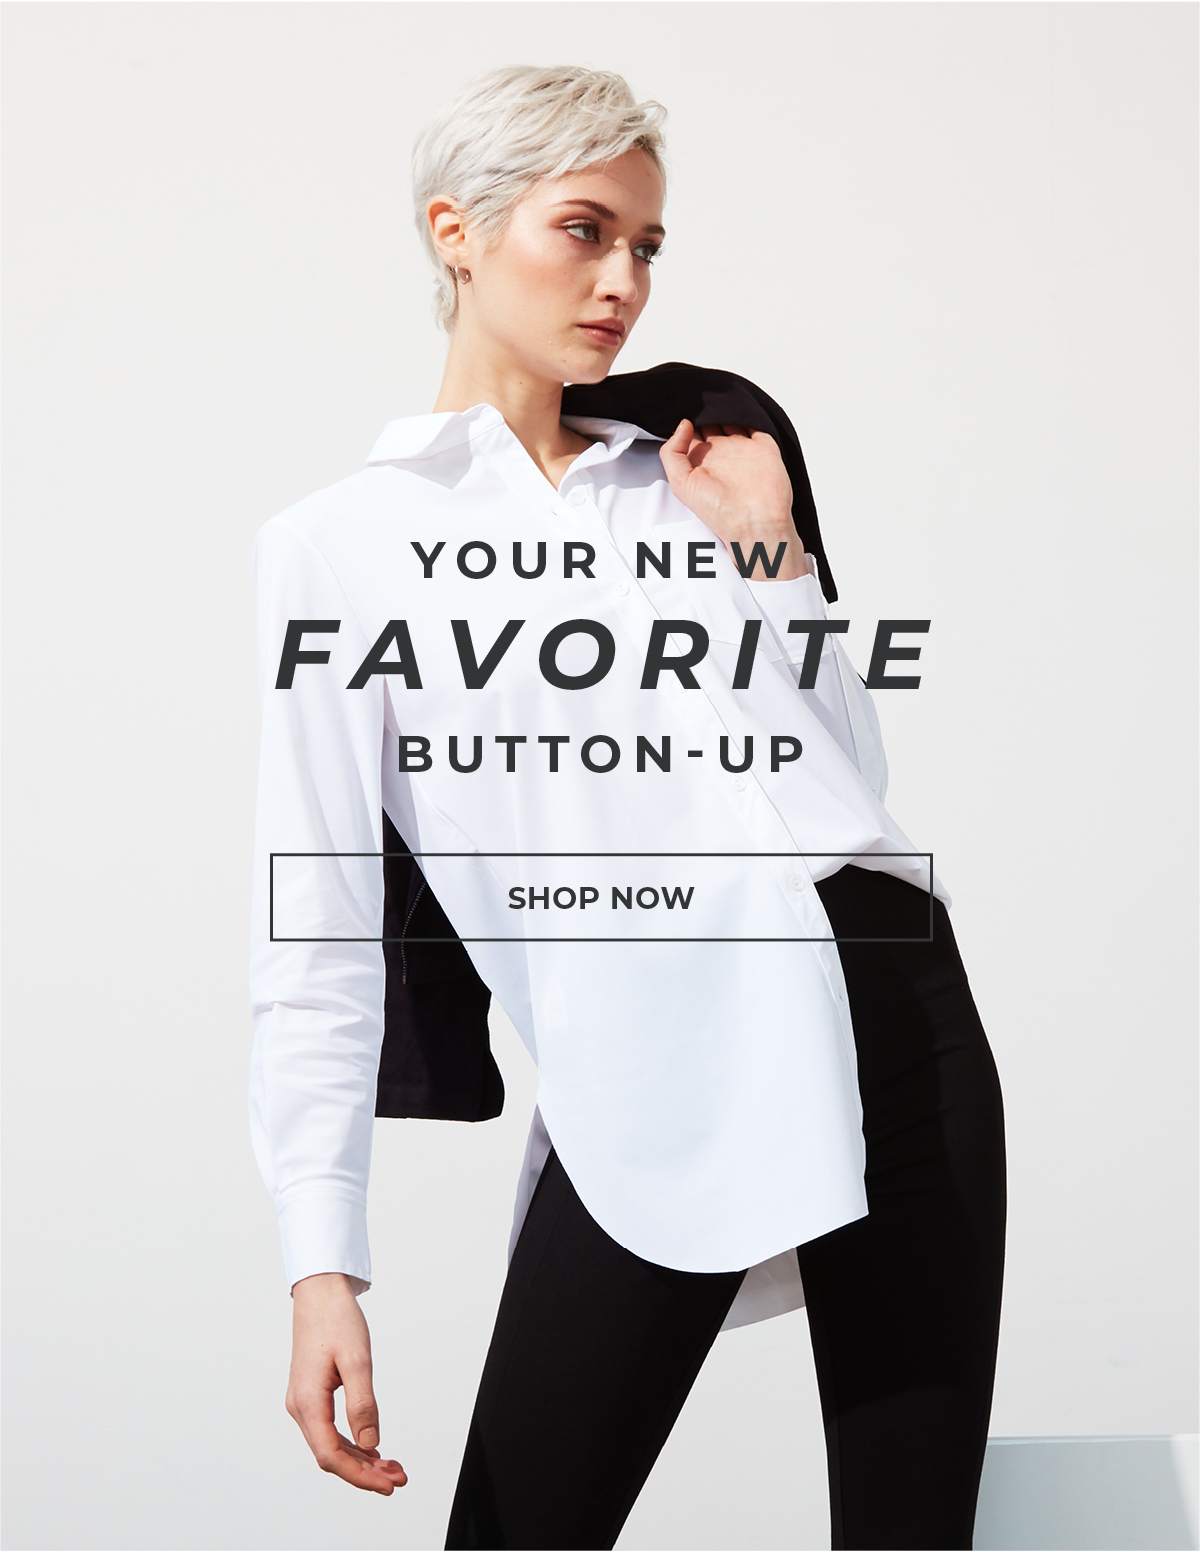 Your New Favorite Button Up